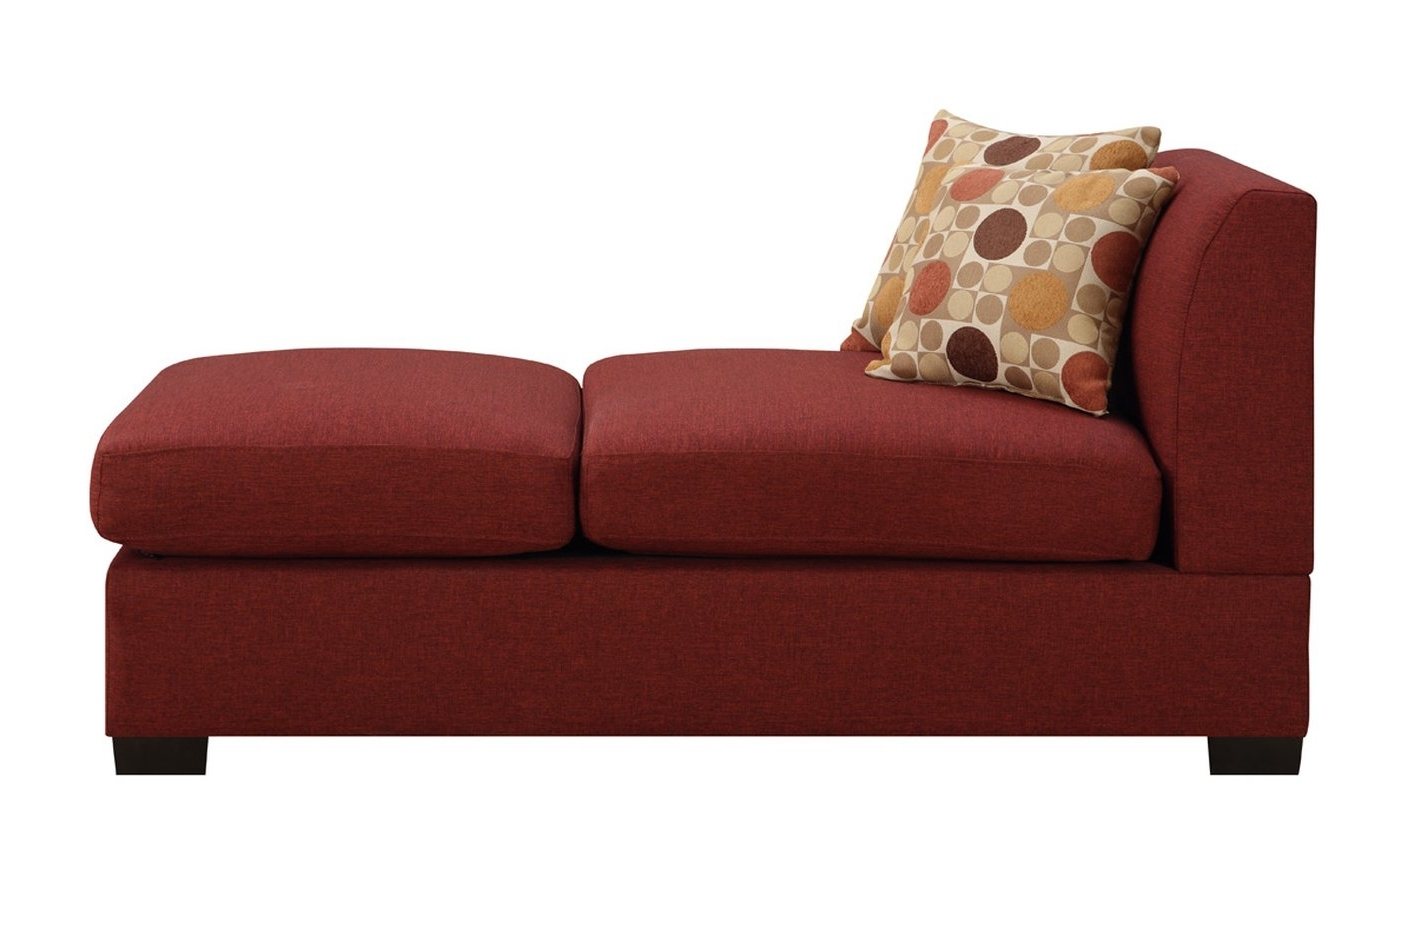 Red Chaises For Widely Used Chaises – Steal A Sofa Furniture Outlet In Los Angeles Ca (View 10 of 15)